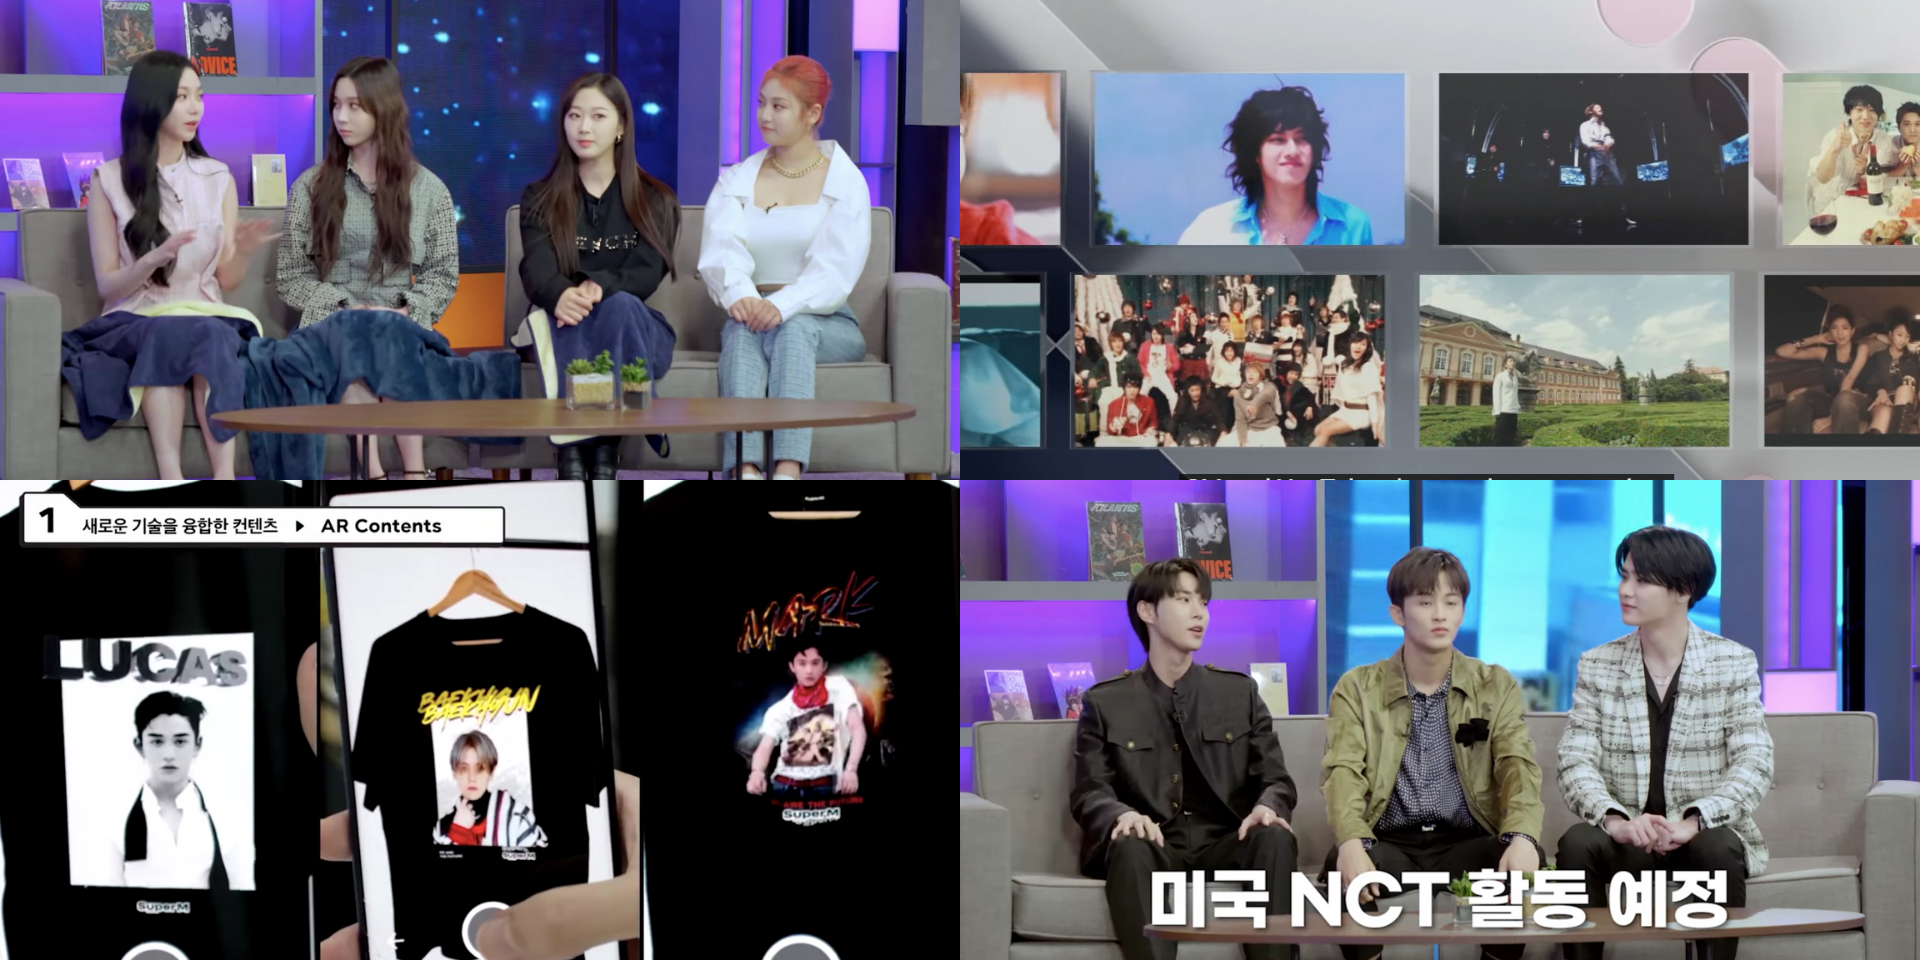 7 highlights from SM Congress 2021: NCT Hollywood, aespa comeback, SM Culture Universe, and more